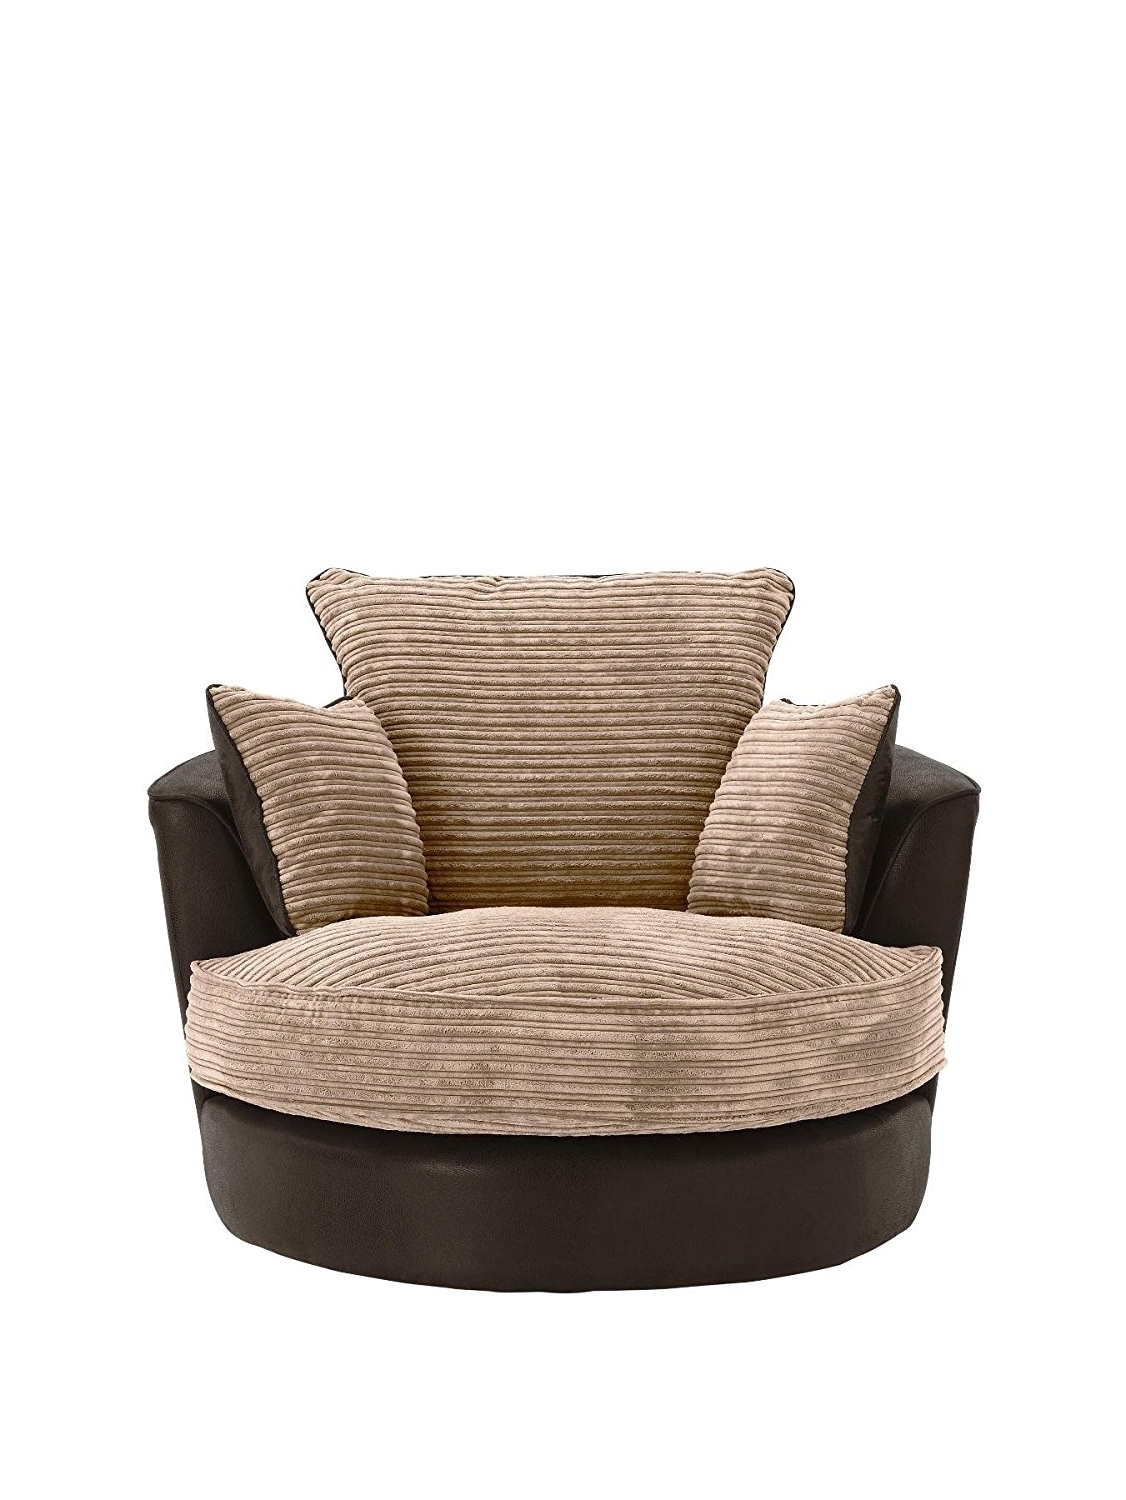 Best Home Chair Decoration For Widely Used Cuddler Swivel Sofa Chairs (View 14 of 15)